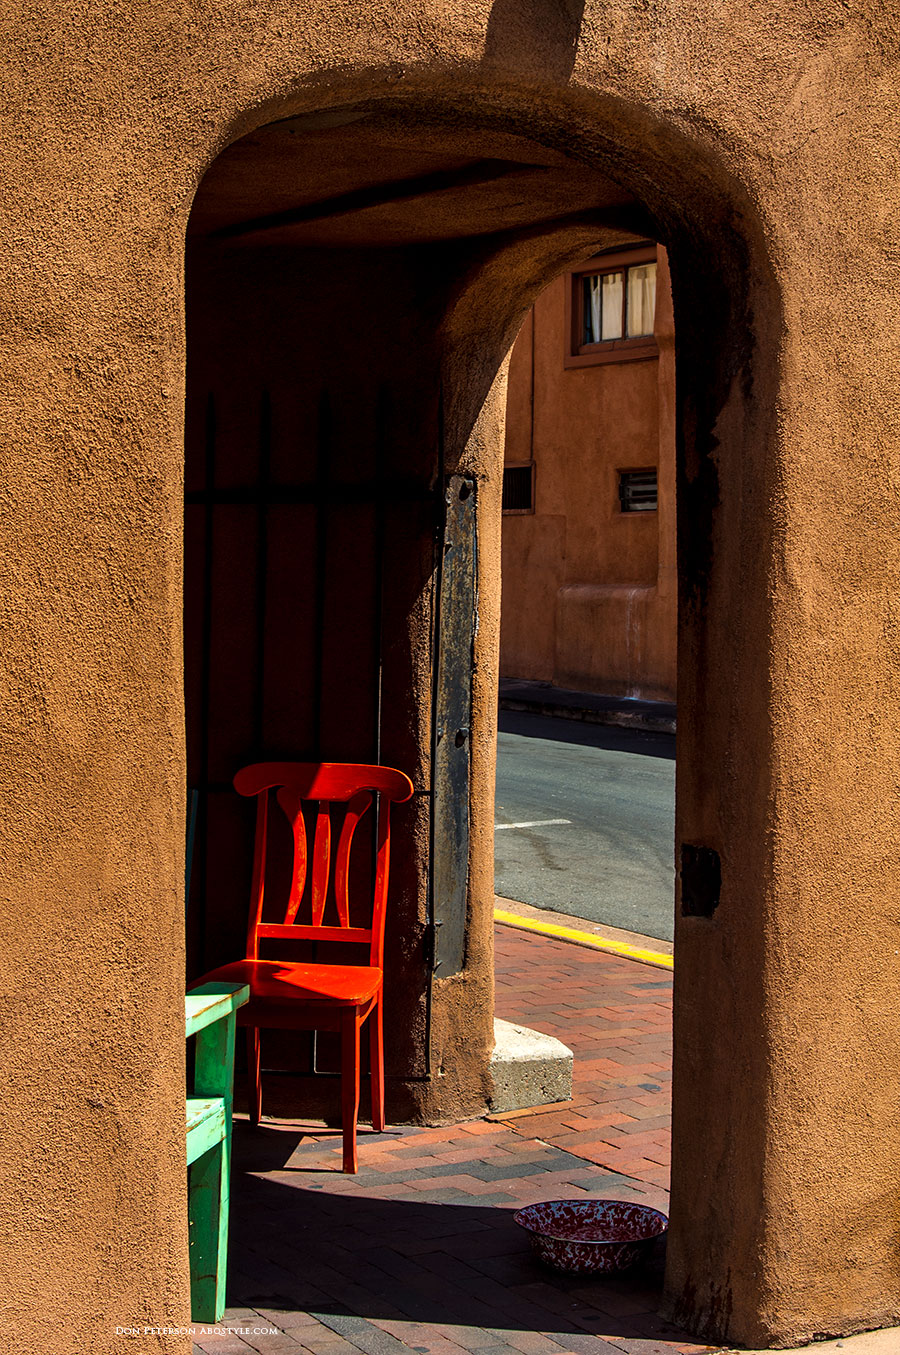 Downtown, Santa Fe, New Mexico